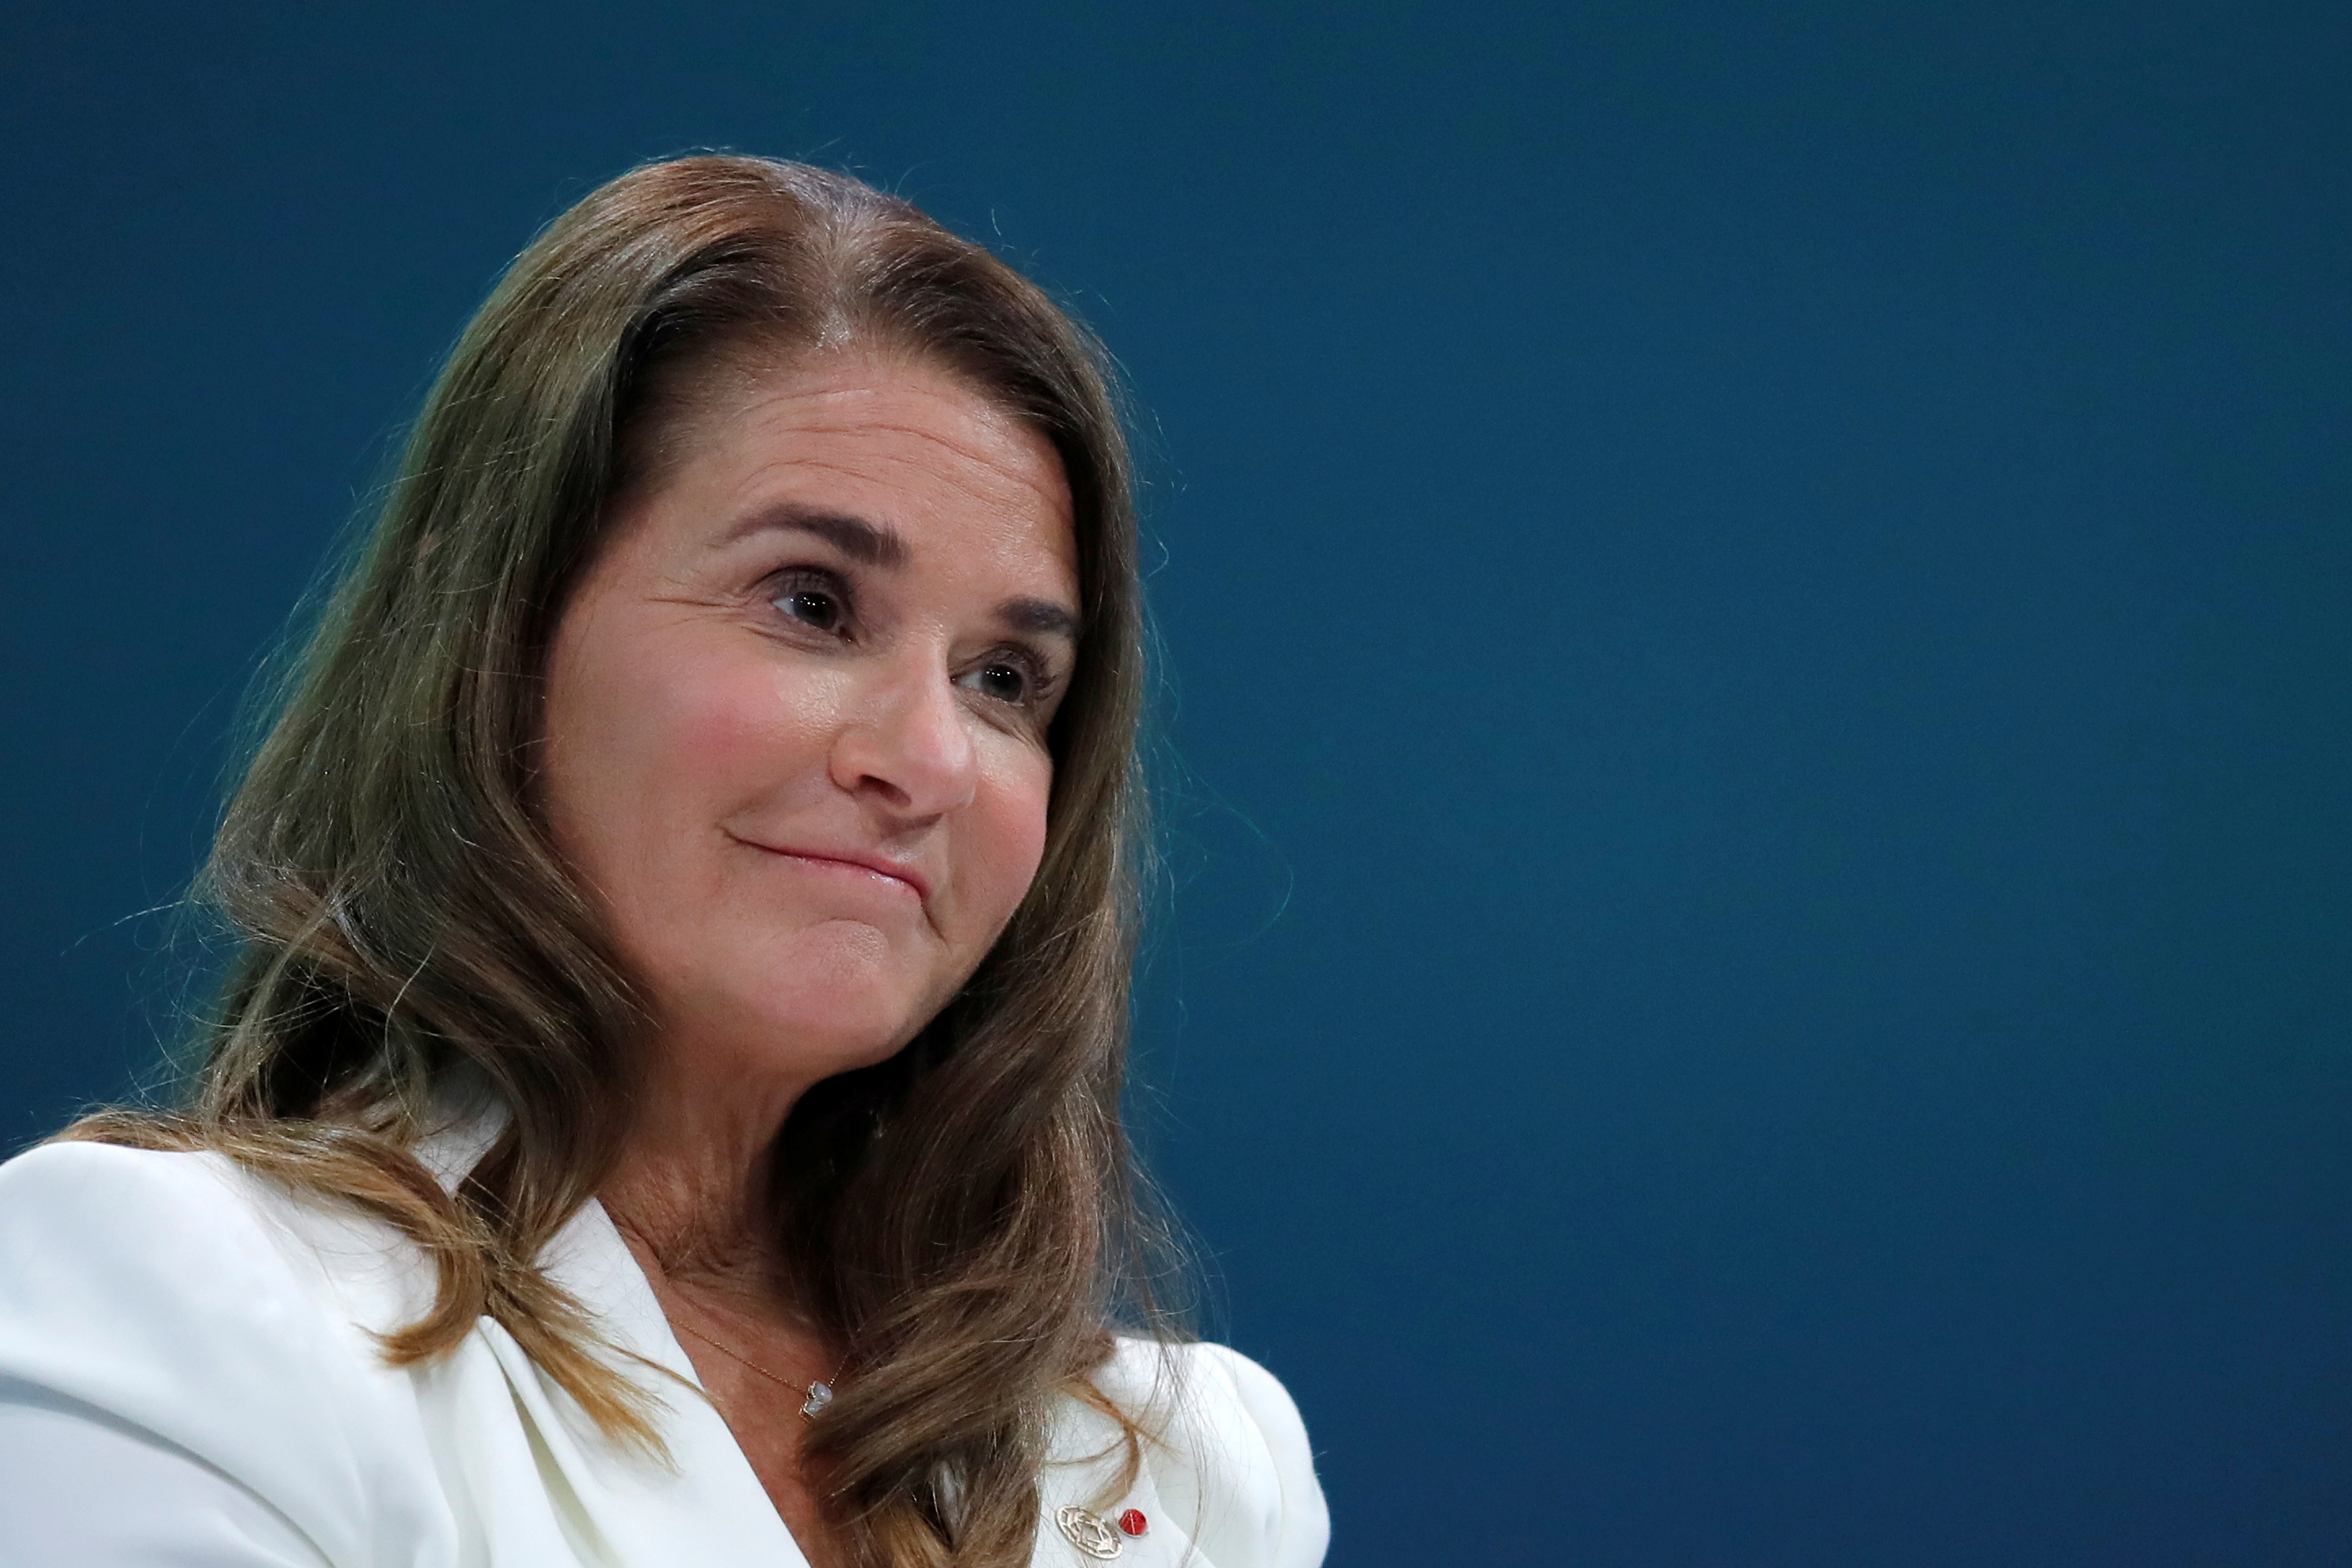 Melinda Gates, Co-Chair of the Bill and Melinda Gates Foundation, attends the opening ceremony of the Generation Equality Forum at the Louvre Carrousel in Paris, France, June 30, 2021. REUTERS/Gonzalo Fuentes